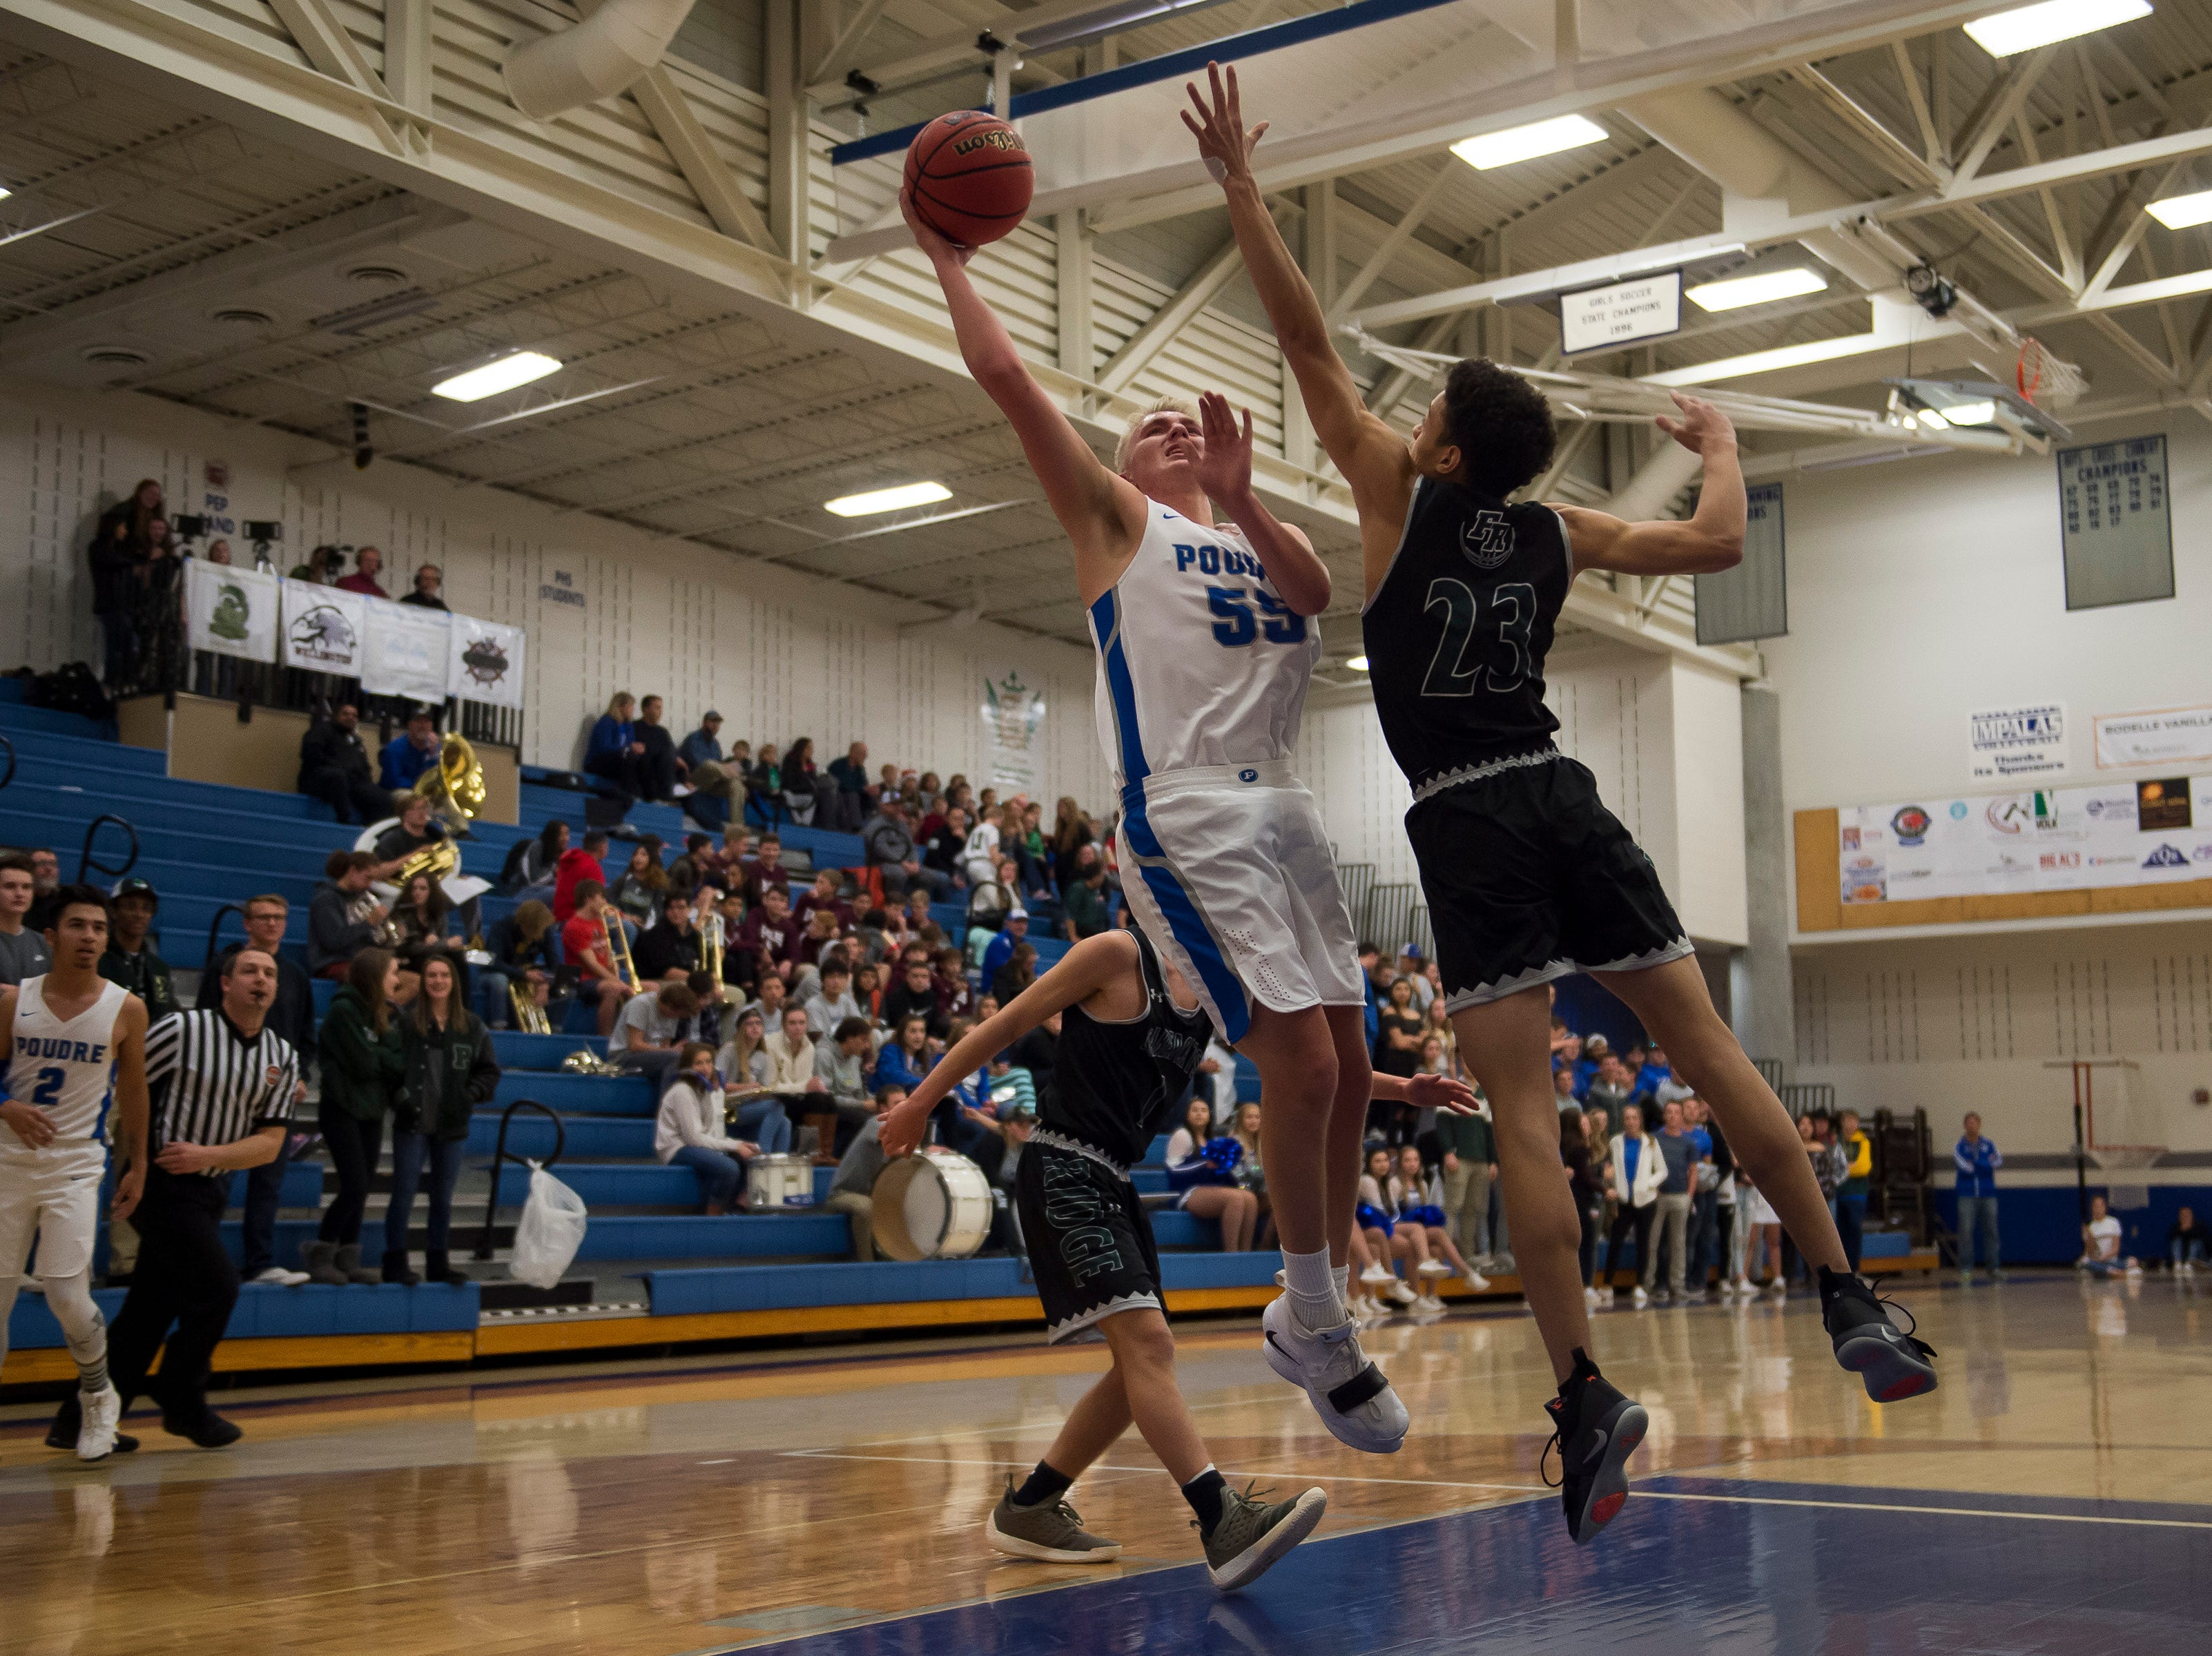 Poudre High School senior Jack Fisher (55) gets a shot past Fossil Ridge High School sophomore Tyce Baldwin (23) on Tuesday, Dec. 4, 2018, at Poudre High School on Fort Collins, Colo.